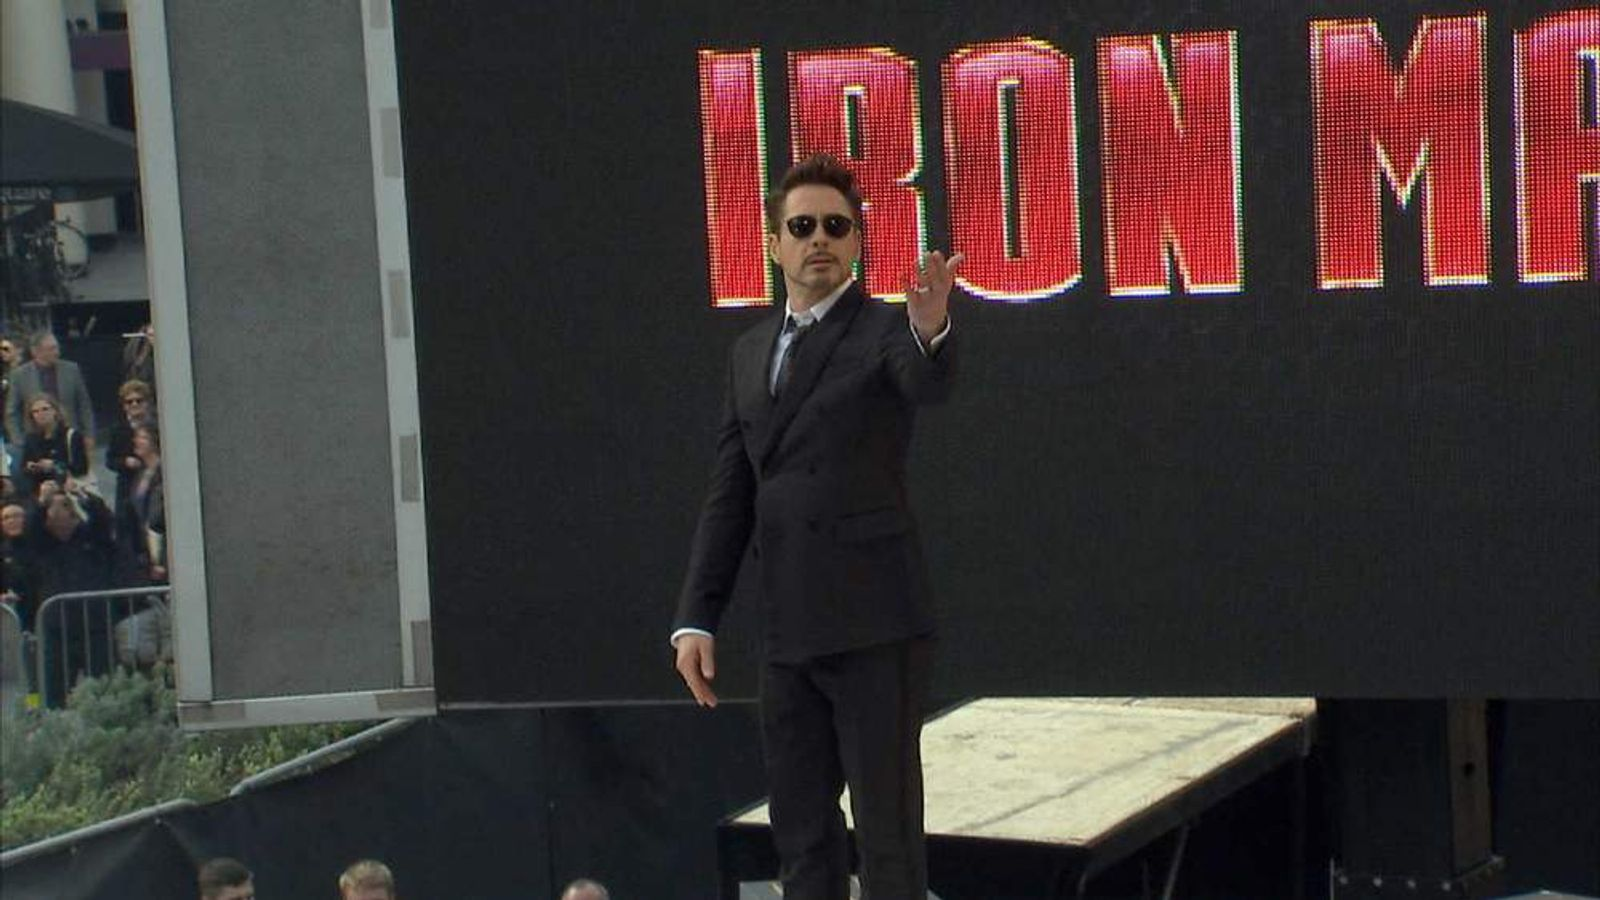 Robert Downey Jnr at the Iron Man 3 premiere